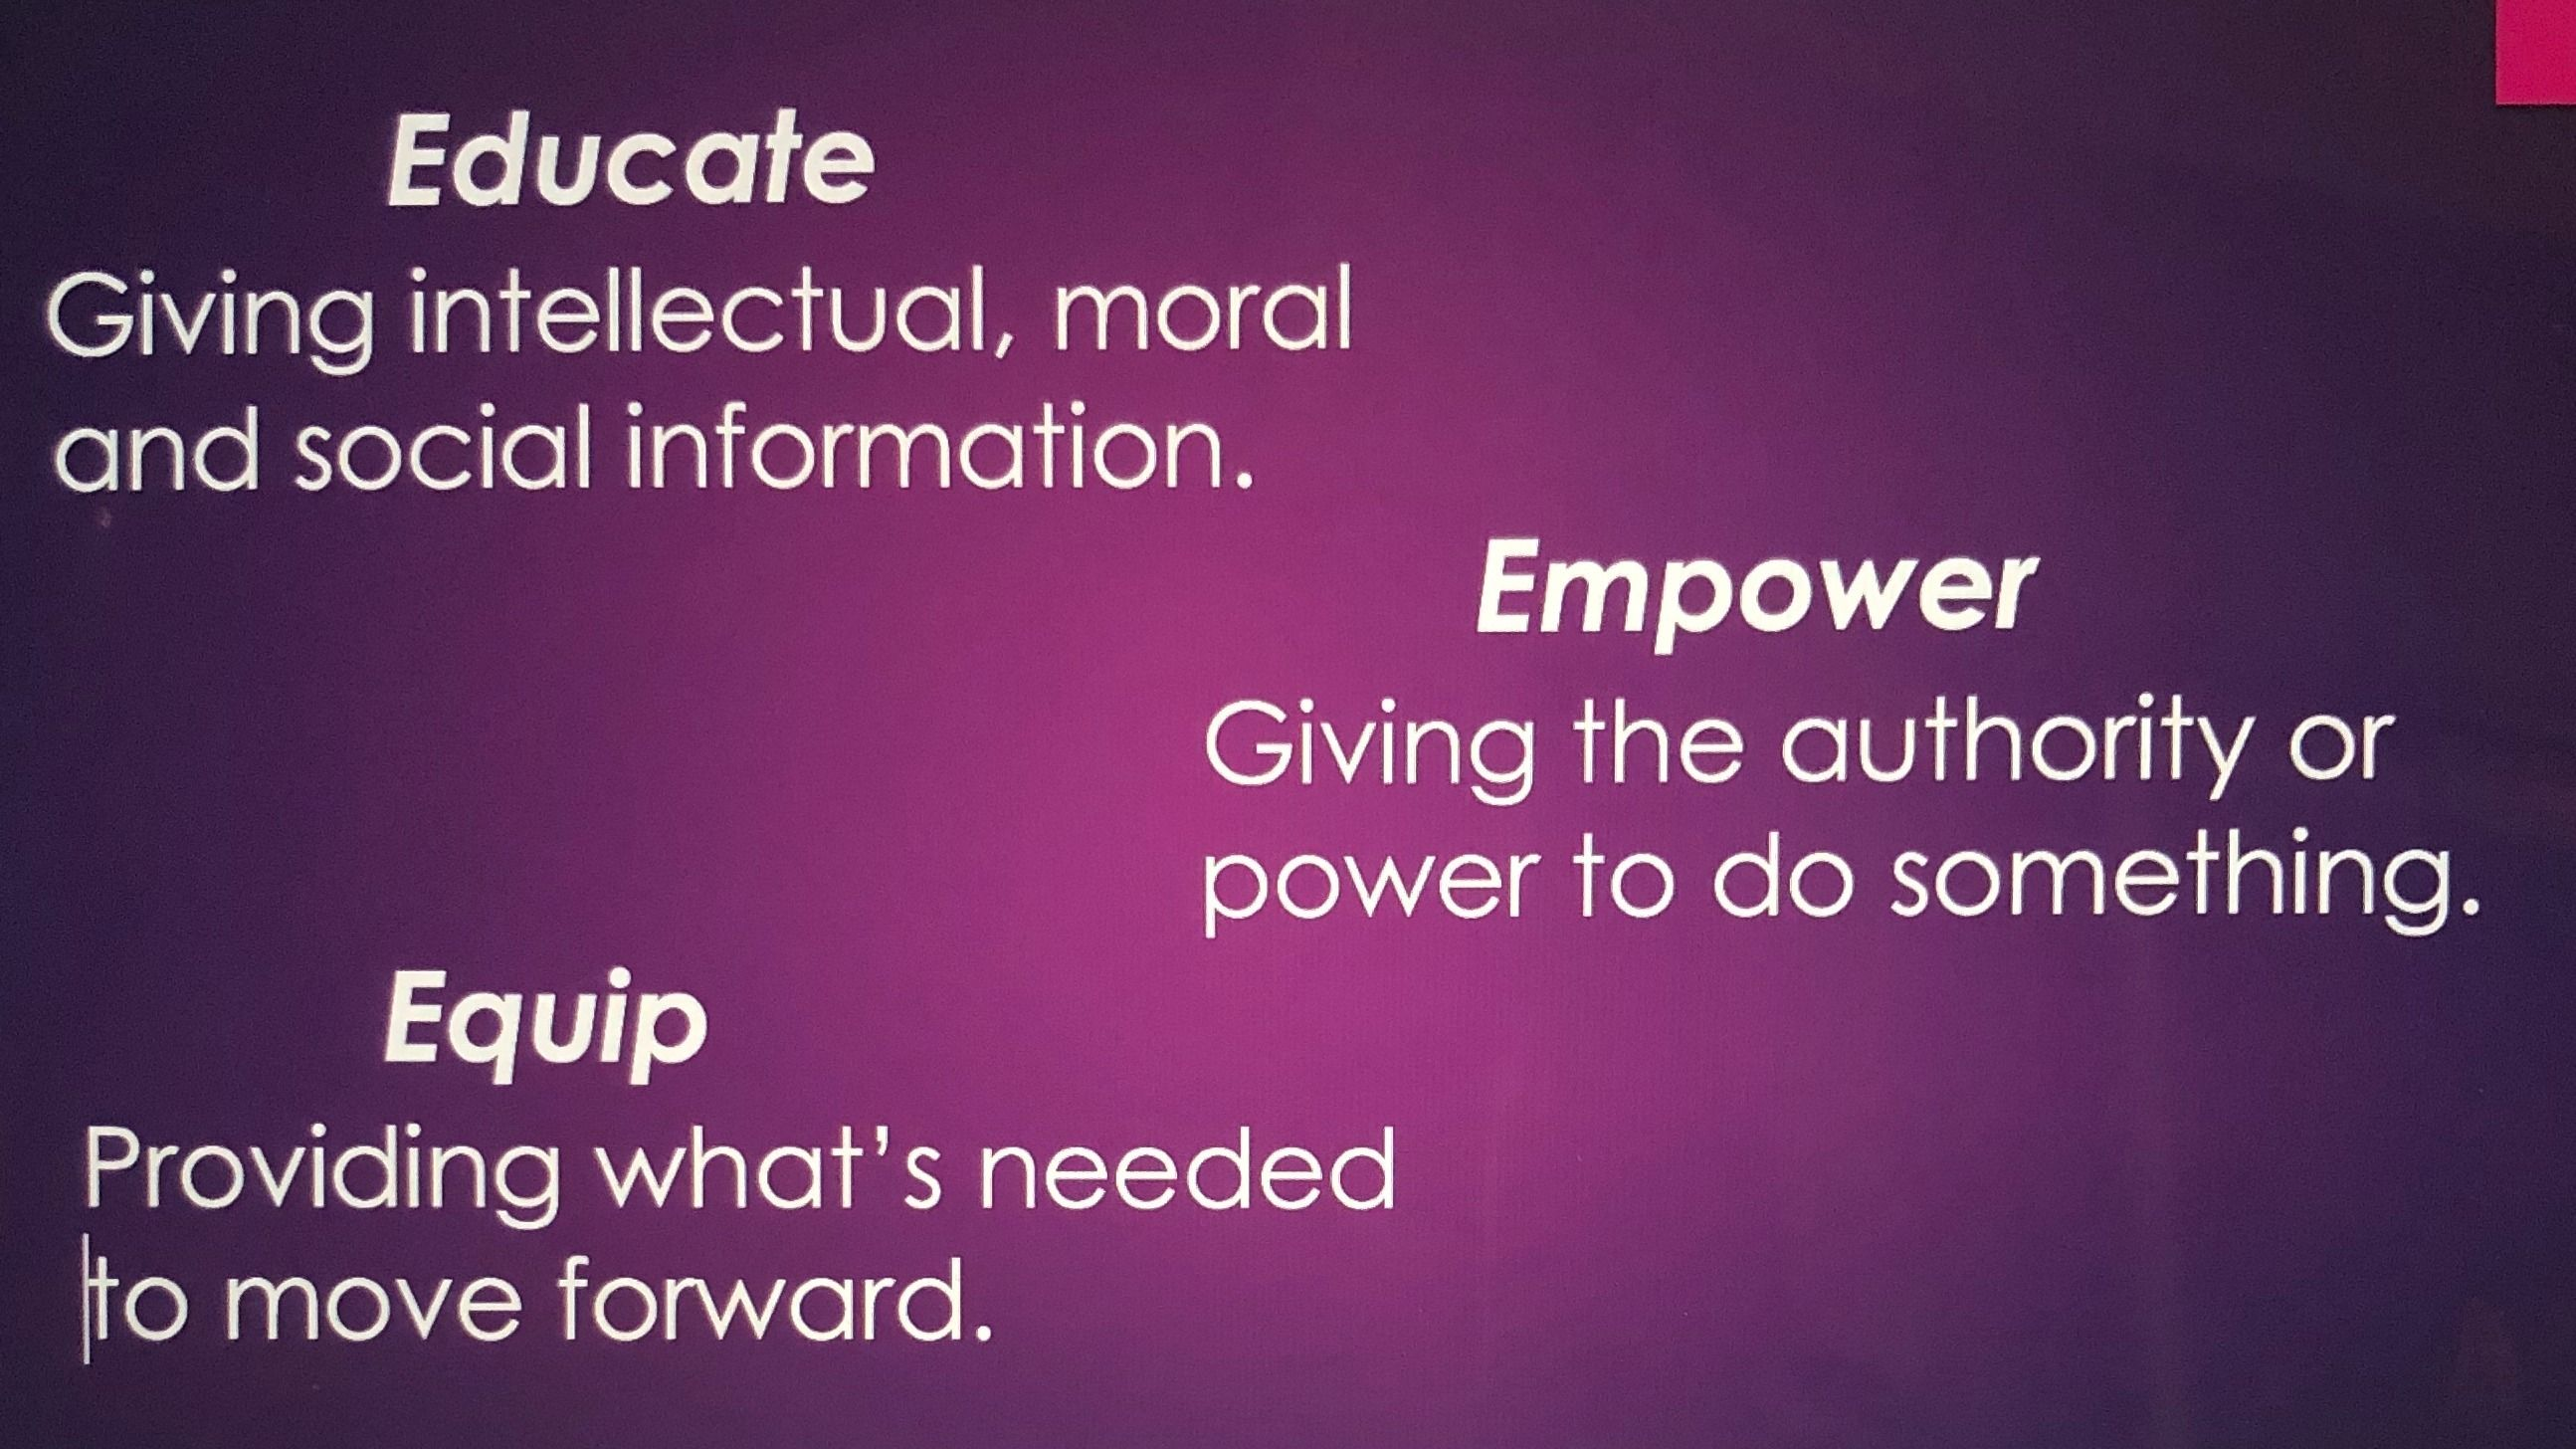 Educating, Empowering and Equipping